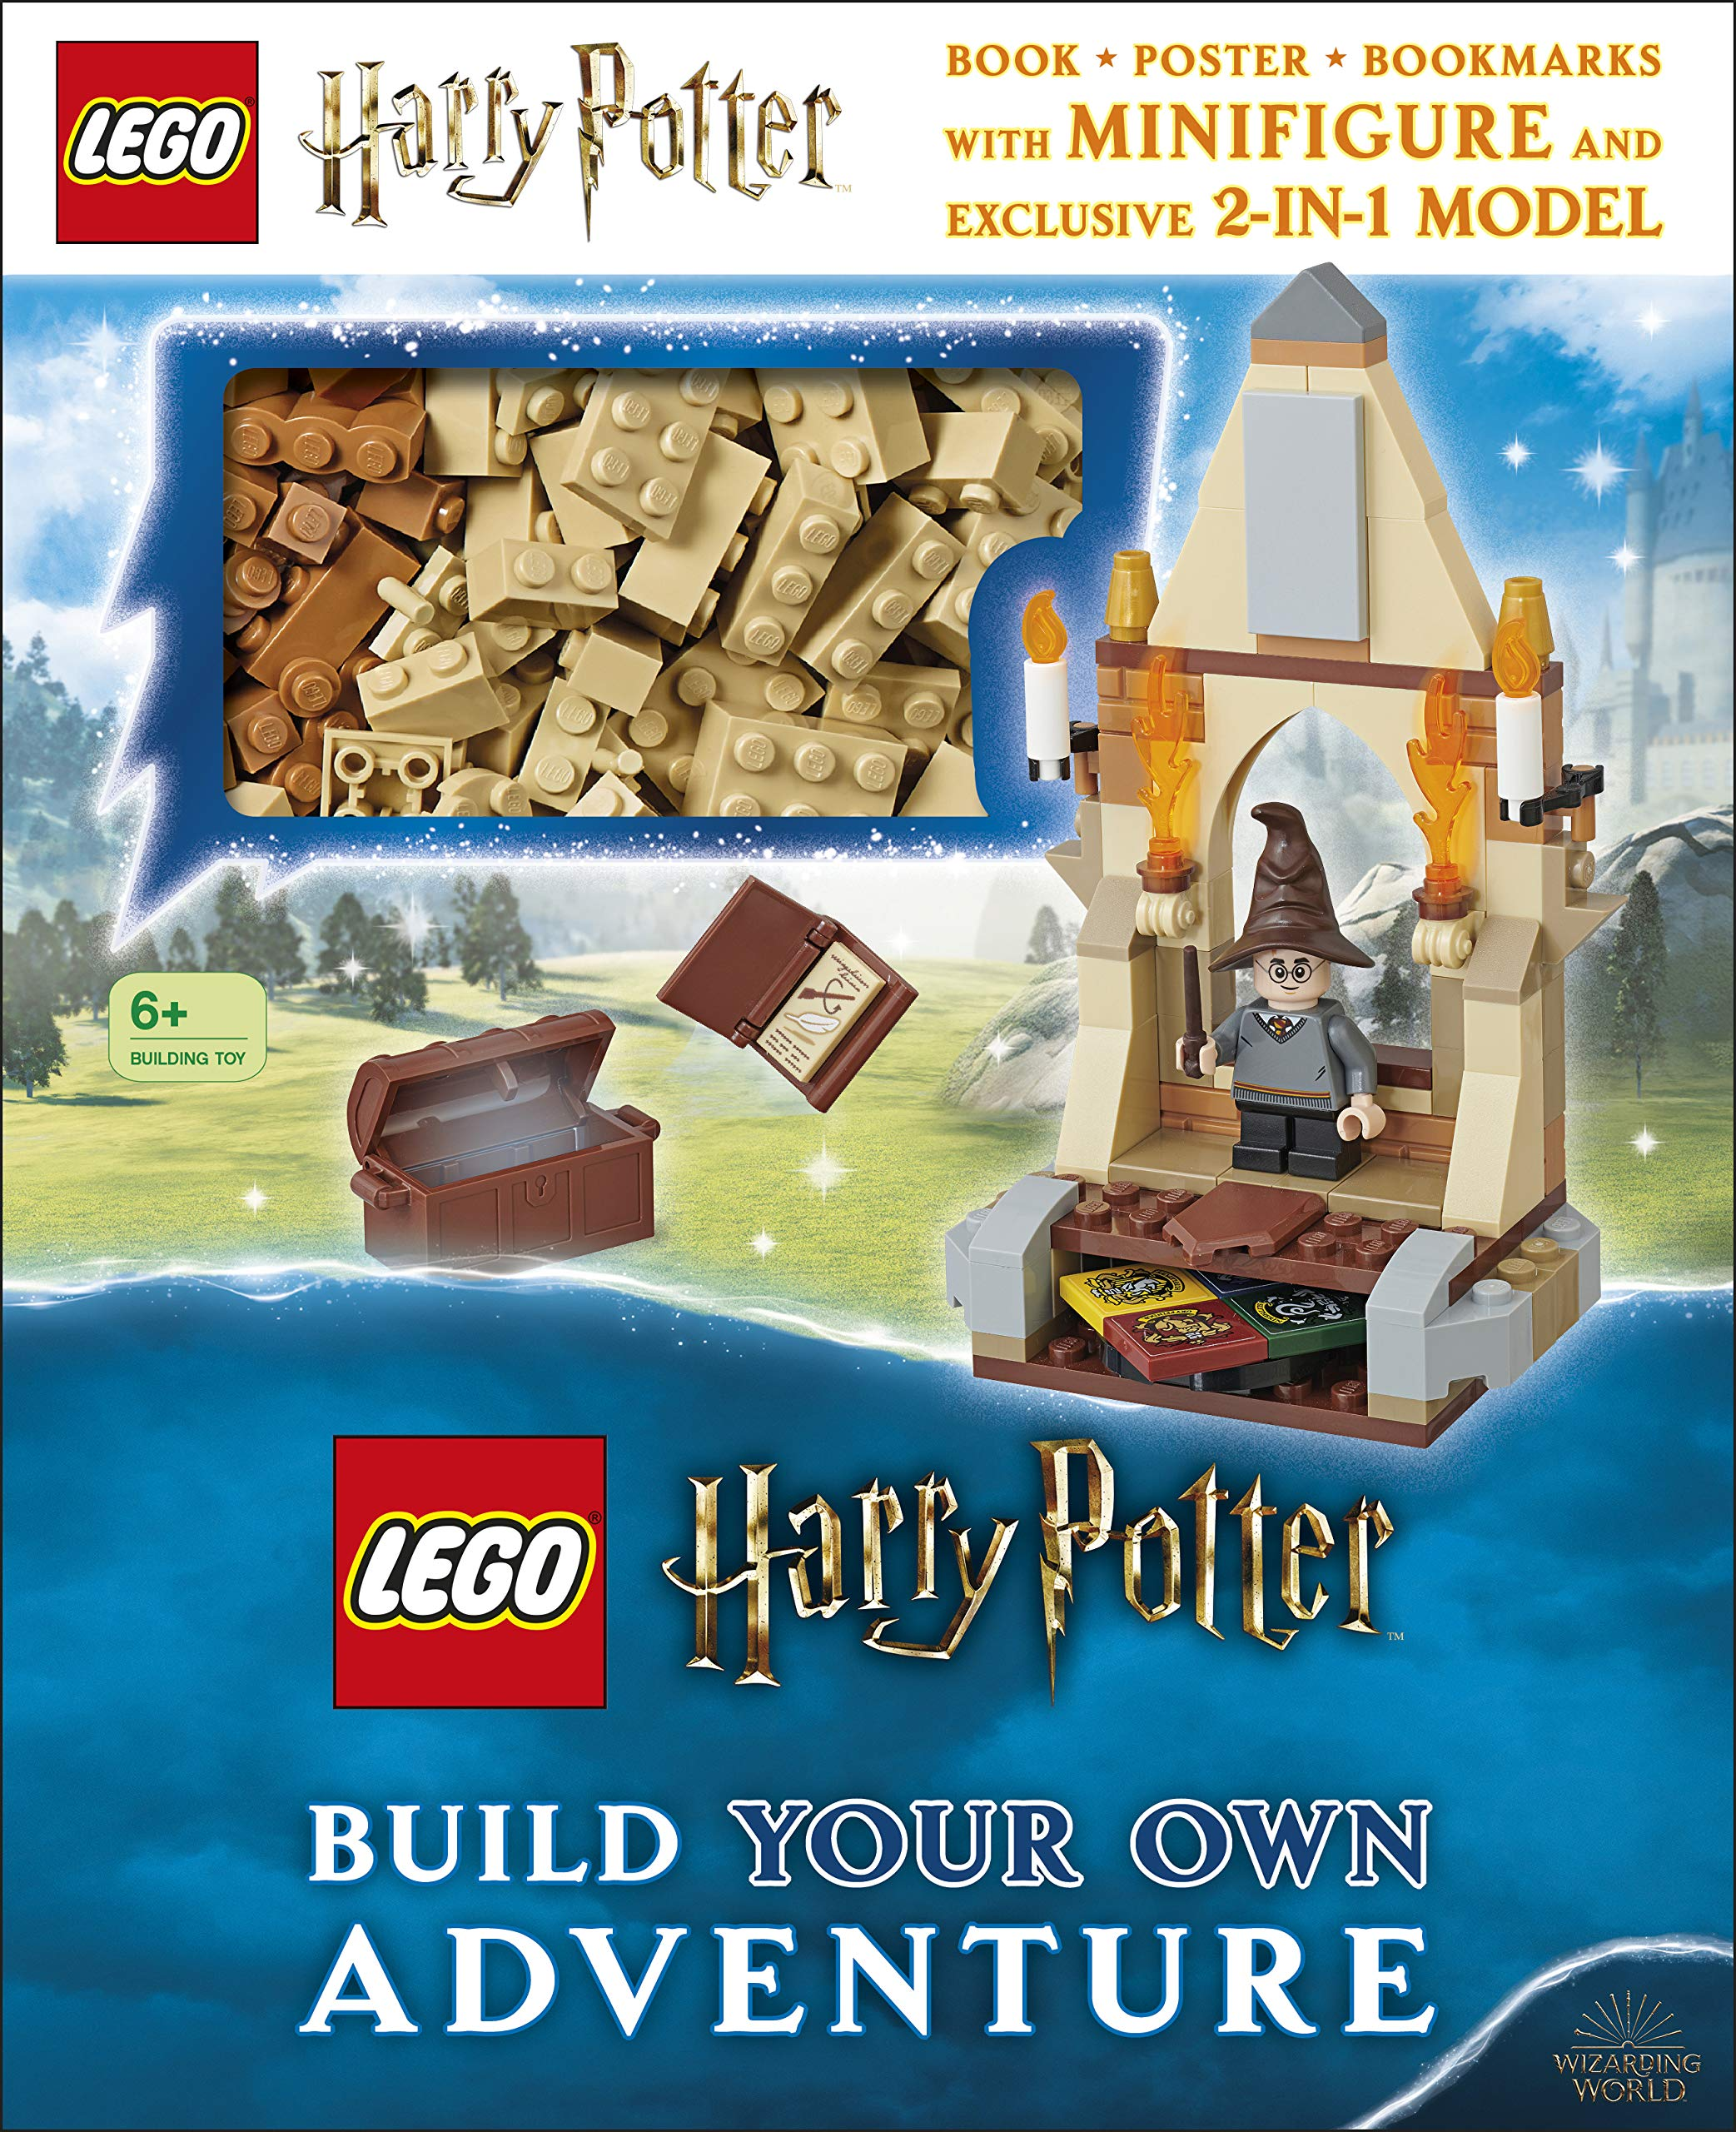 This set includes the instructions and pieces for a 2-in-1 set.